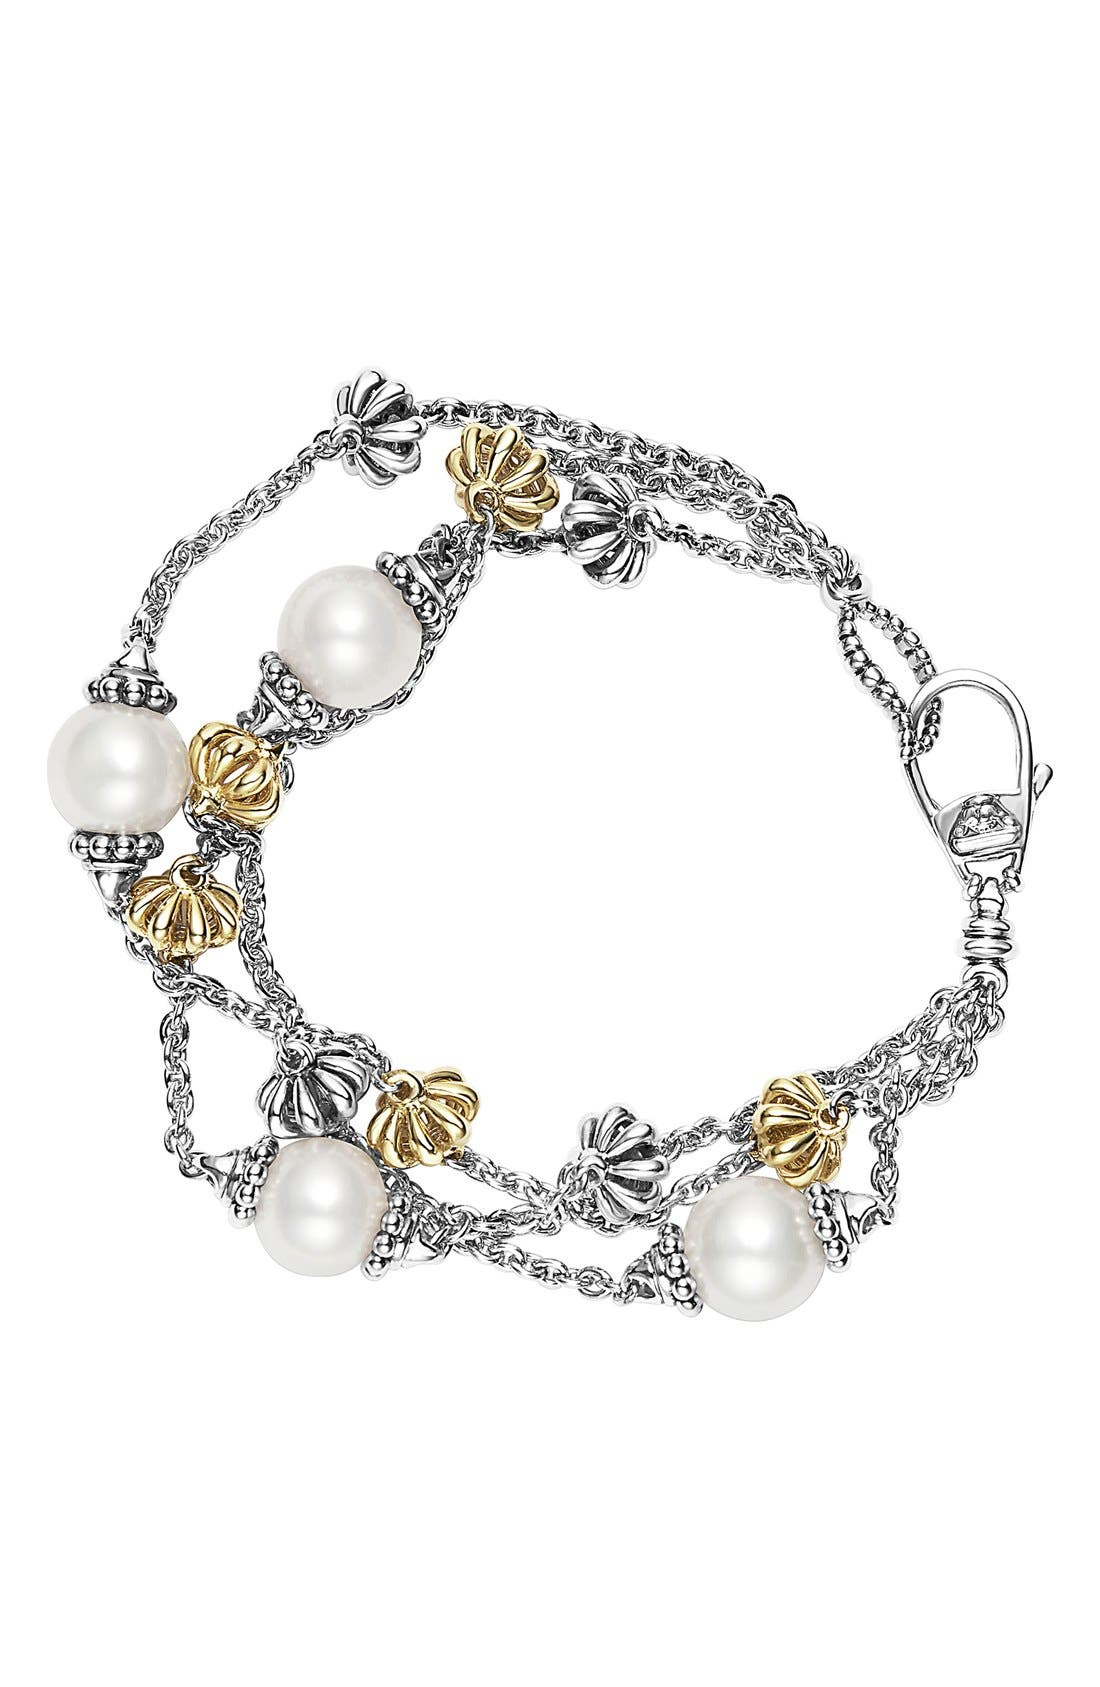 'Luna' Pearl Three-Strand Line Bracelet,                             Main thumbnail 1, color,                             Silver/ Gold/ Pearl